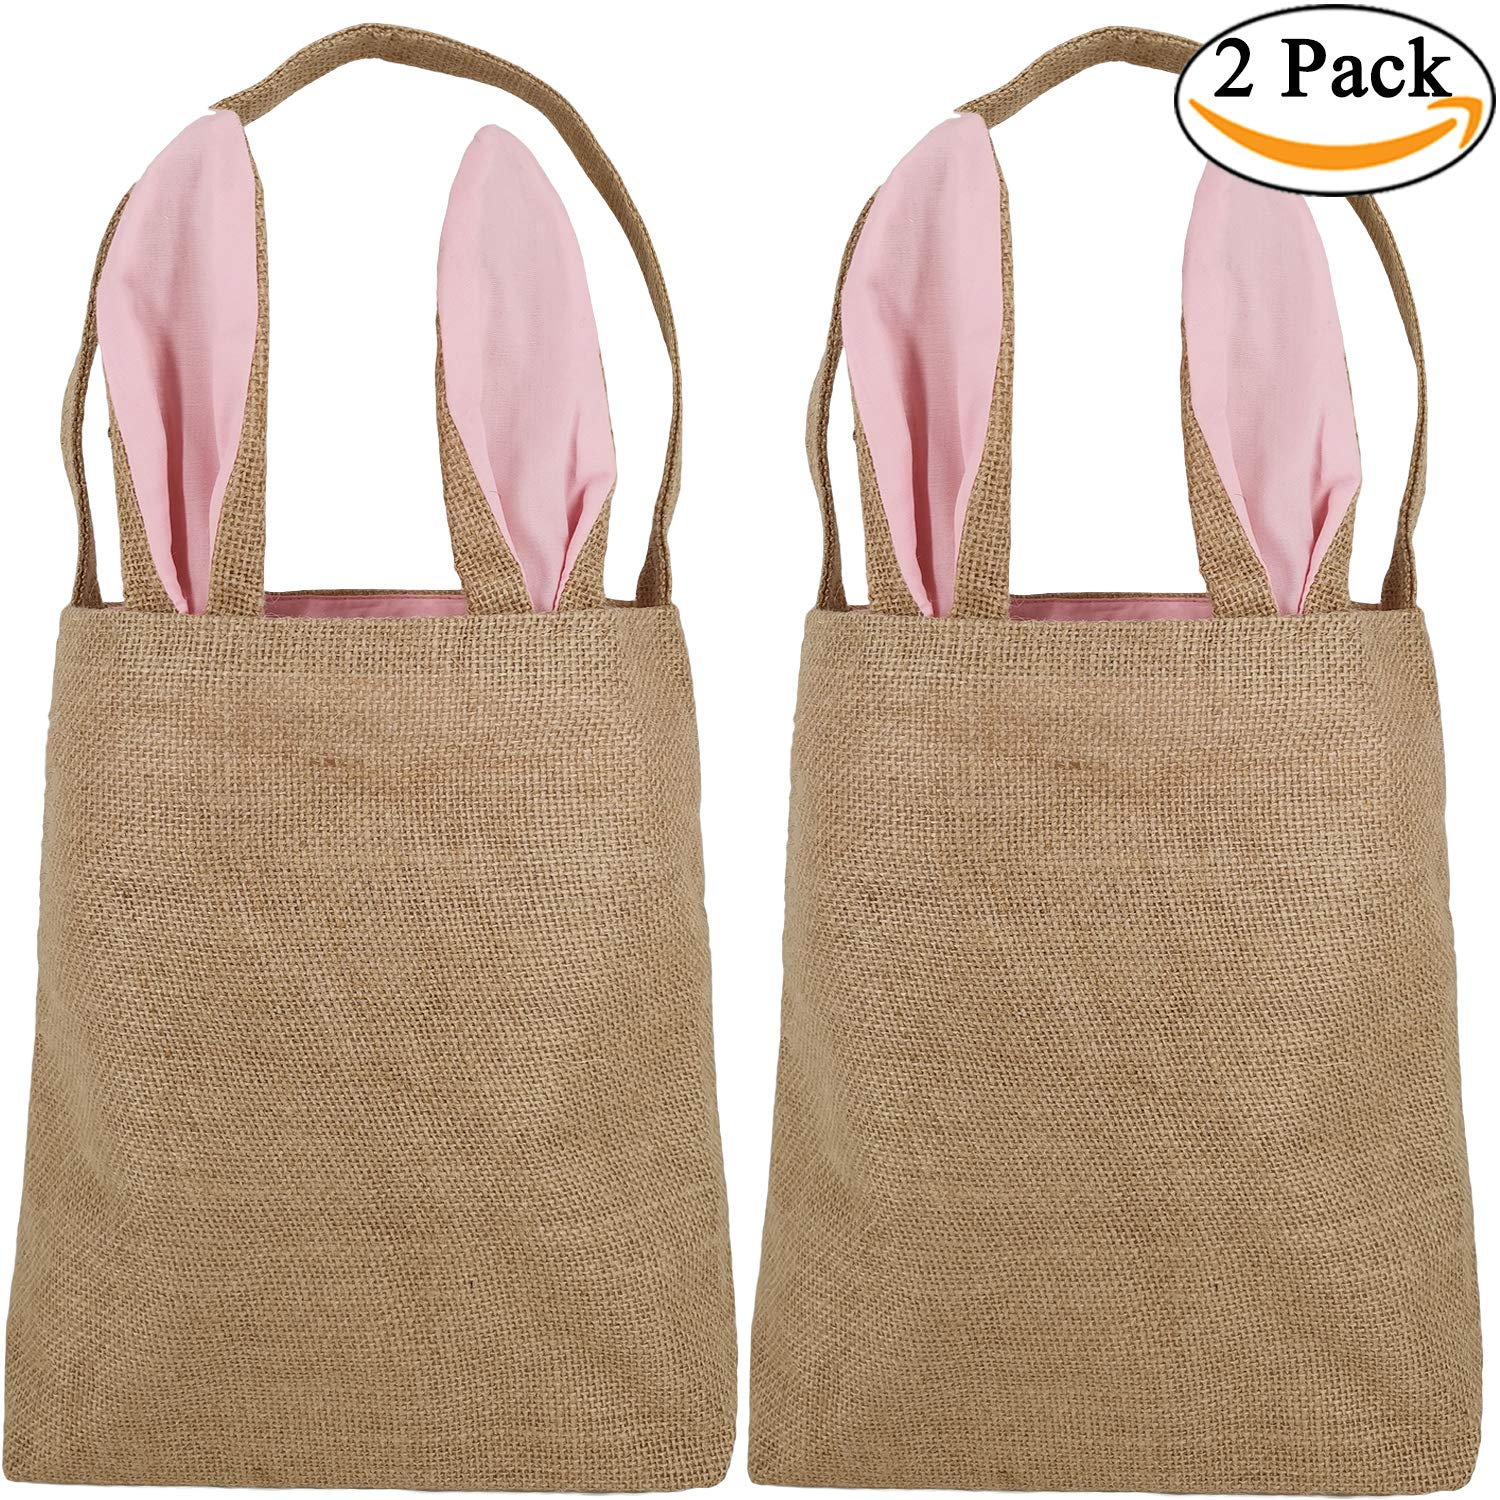 Pink Easter Bunny Basket Egg Baskets for Kids with Cross-Stitch Line Burlap Gift Bag Round Tote Jute Bags for Embroidery DIY Daily Use Y048B